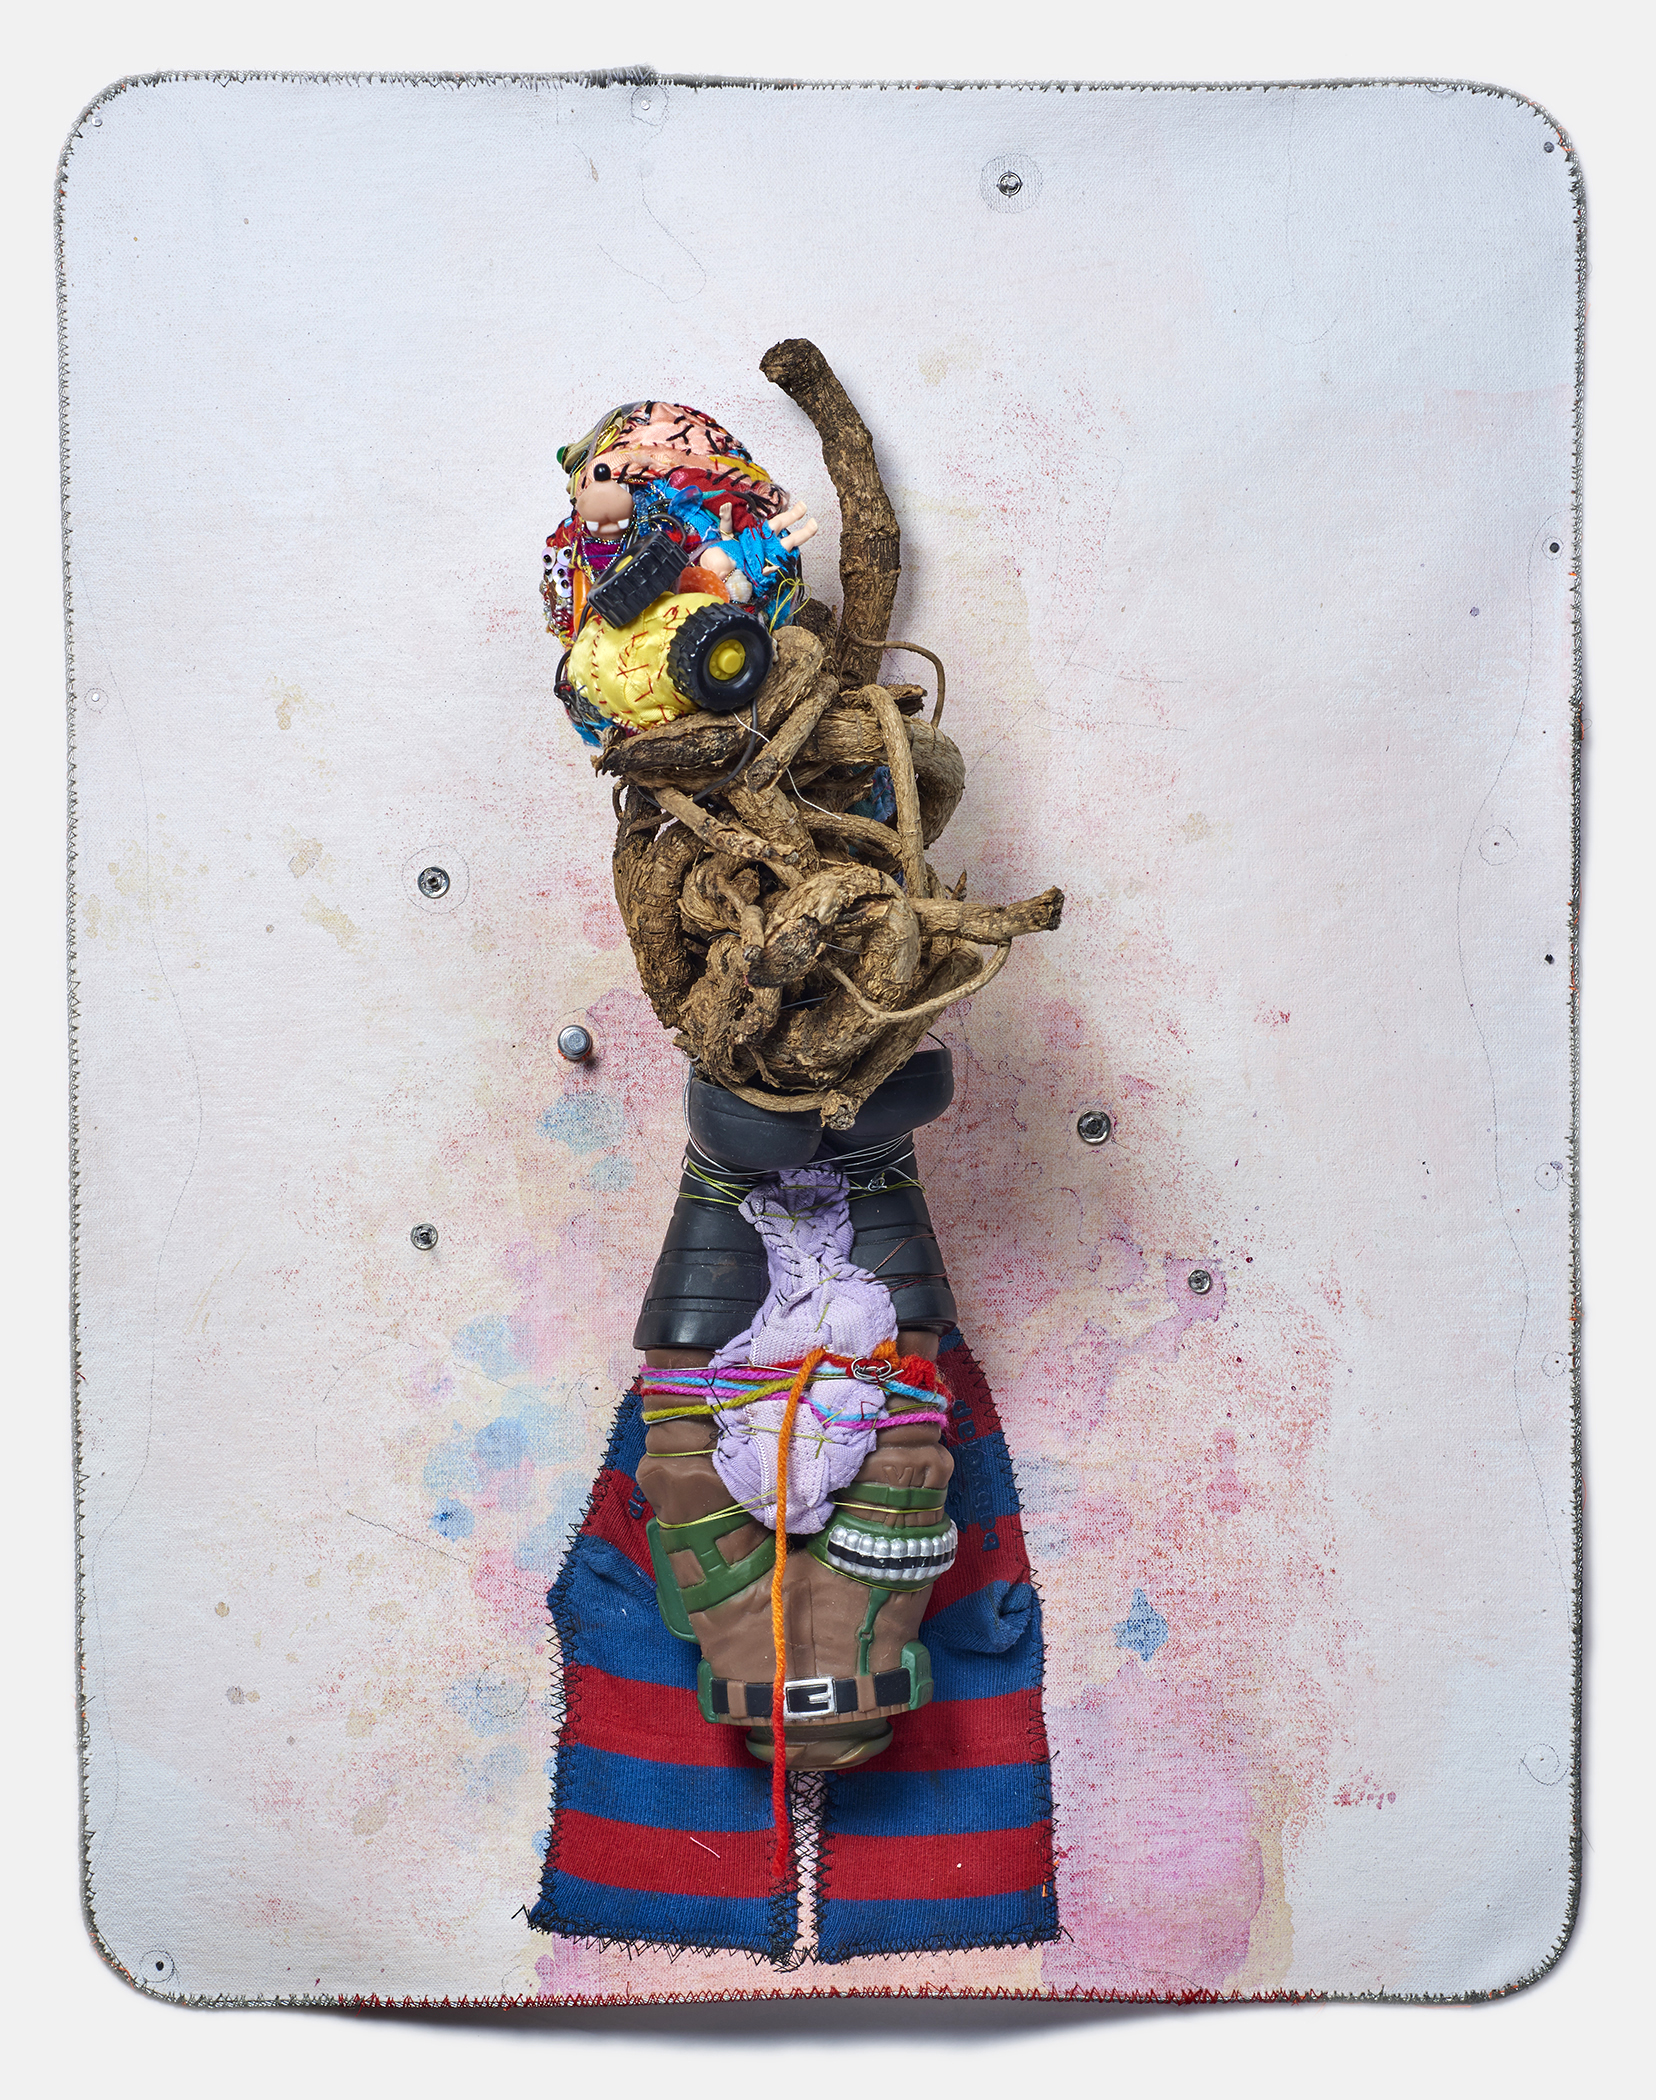 """Nature, Fashion & War    2016,  22 ½""""17 ½"""" x 8"""", metal cable, pencil, gouache, acrylic, yarn, fabric, thread, & found objects (including: a plant root, socks, soldier doll legs) on canvas"""